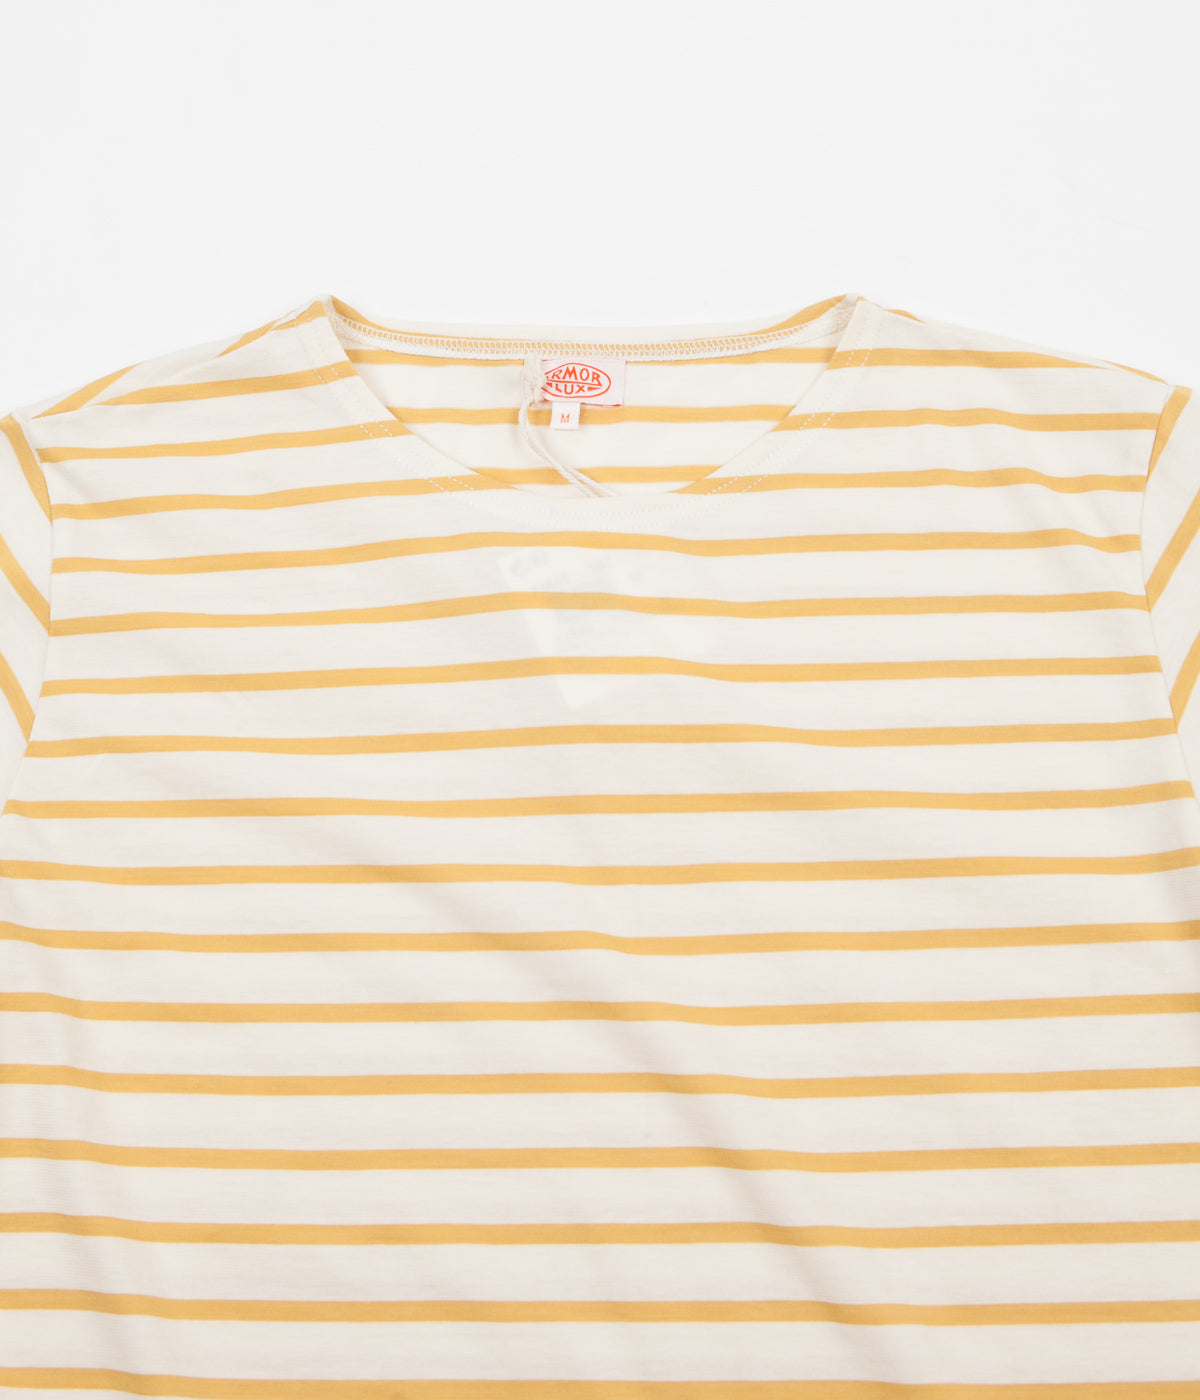 Armor Lux Striped Breton T-Shirt - Nature / Yellow